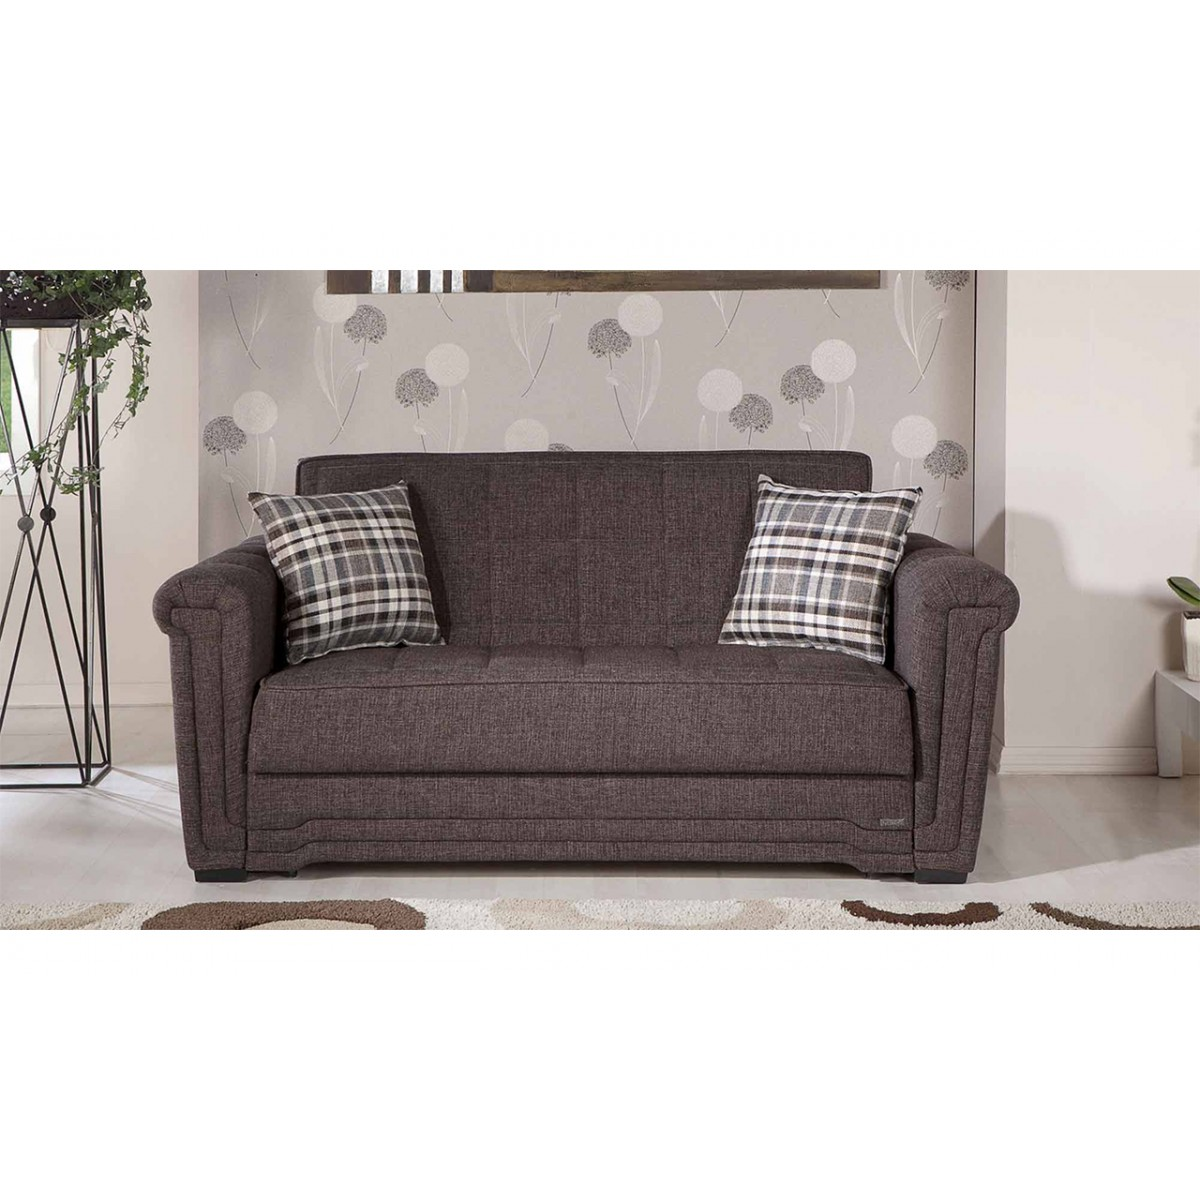 Loveseat Sleeper | Sleeper Sofa and Loveseat | Best Sleeper Sofas